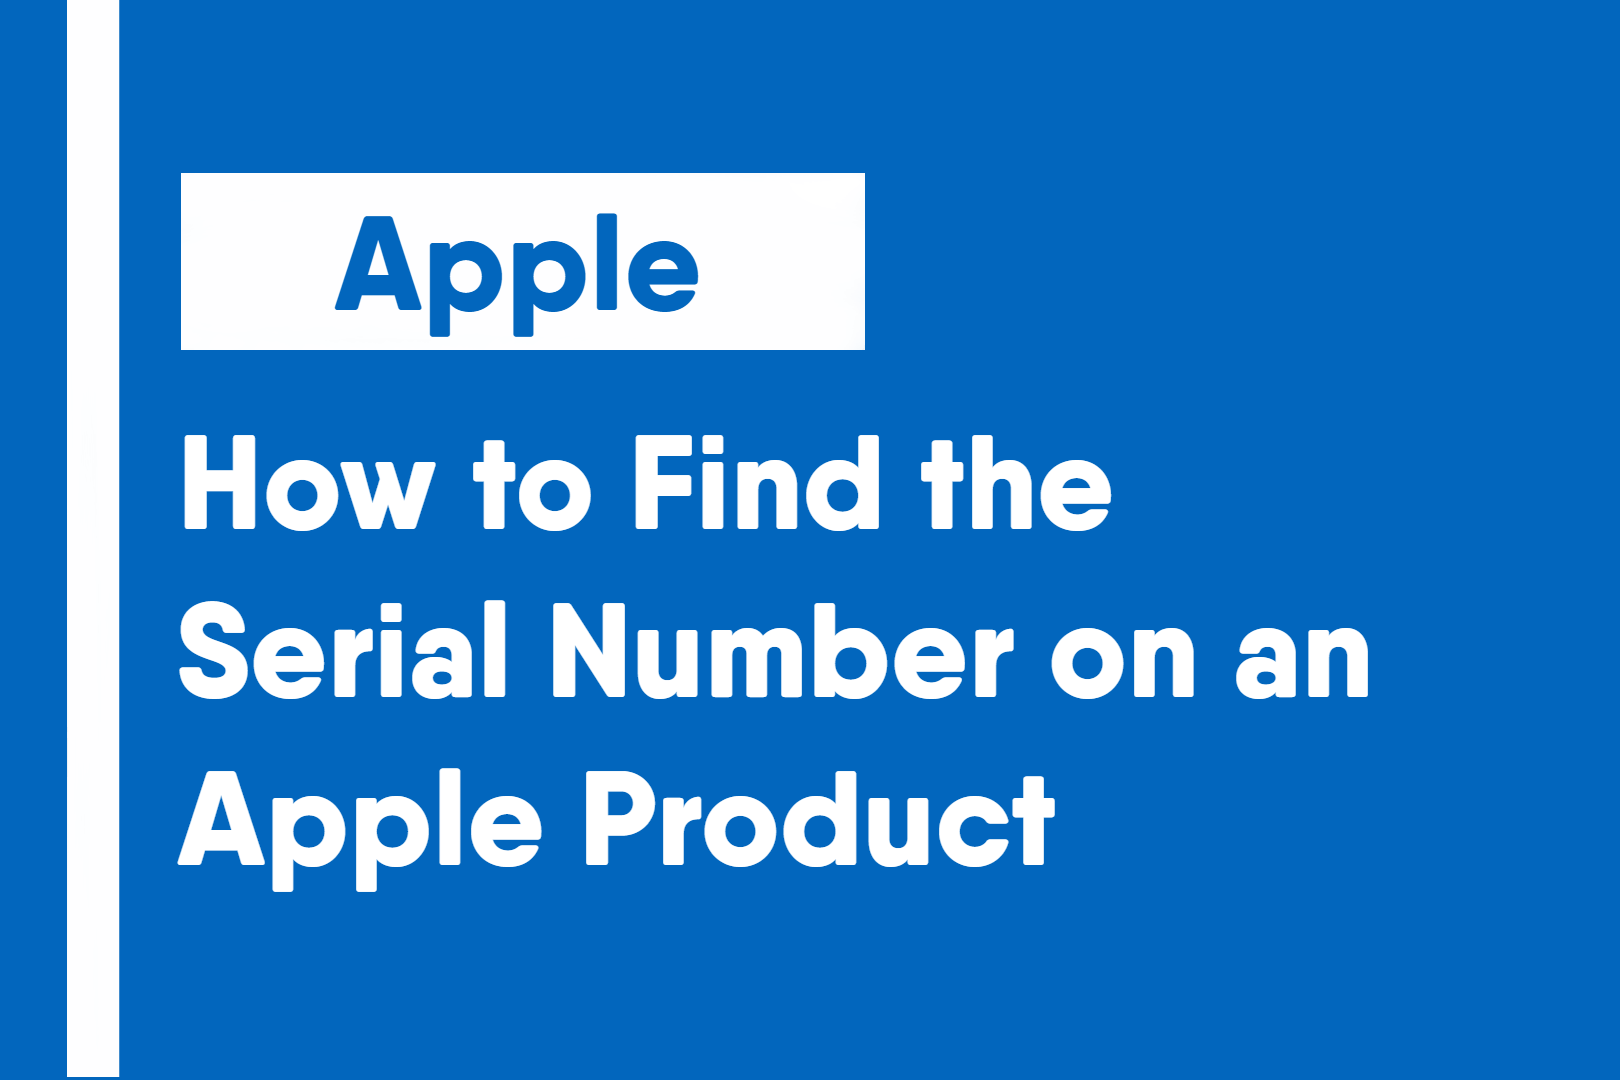 How to Find the Serial Number on an Apple Product